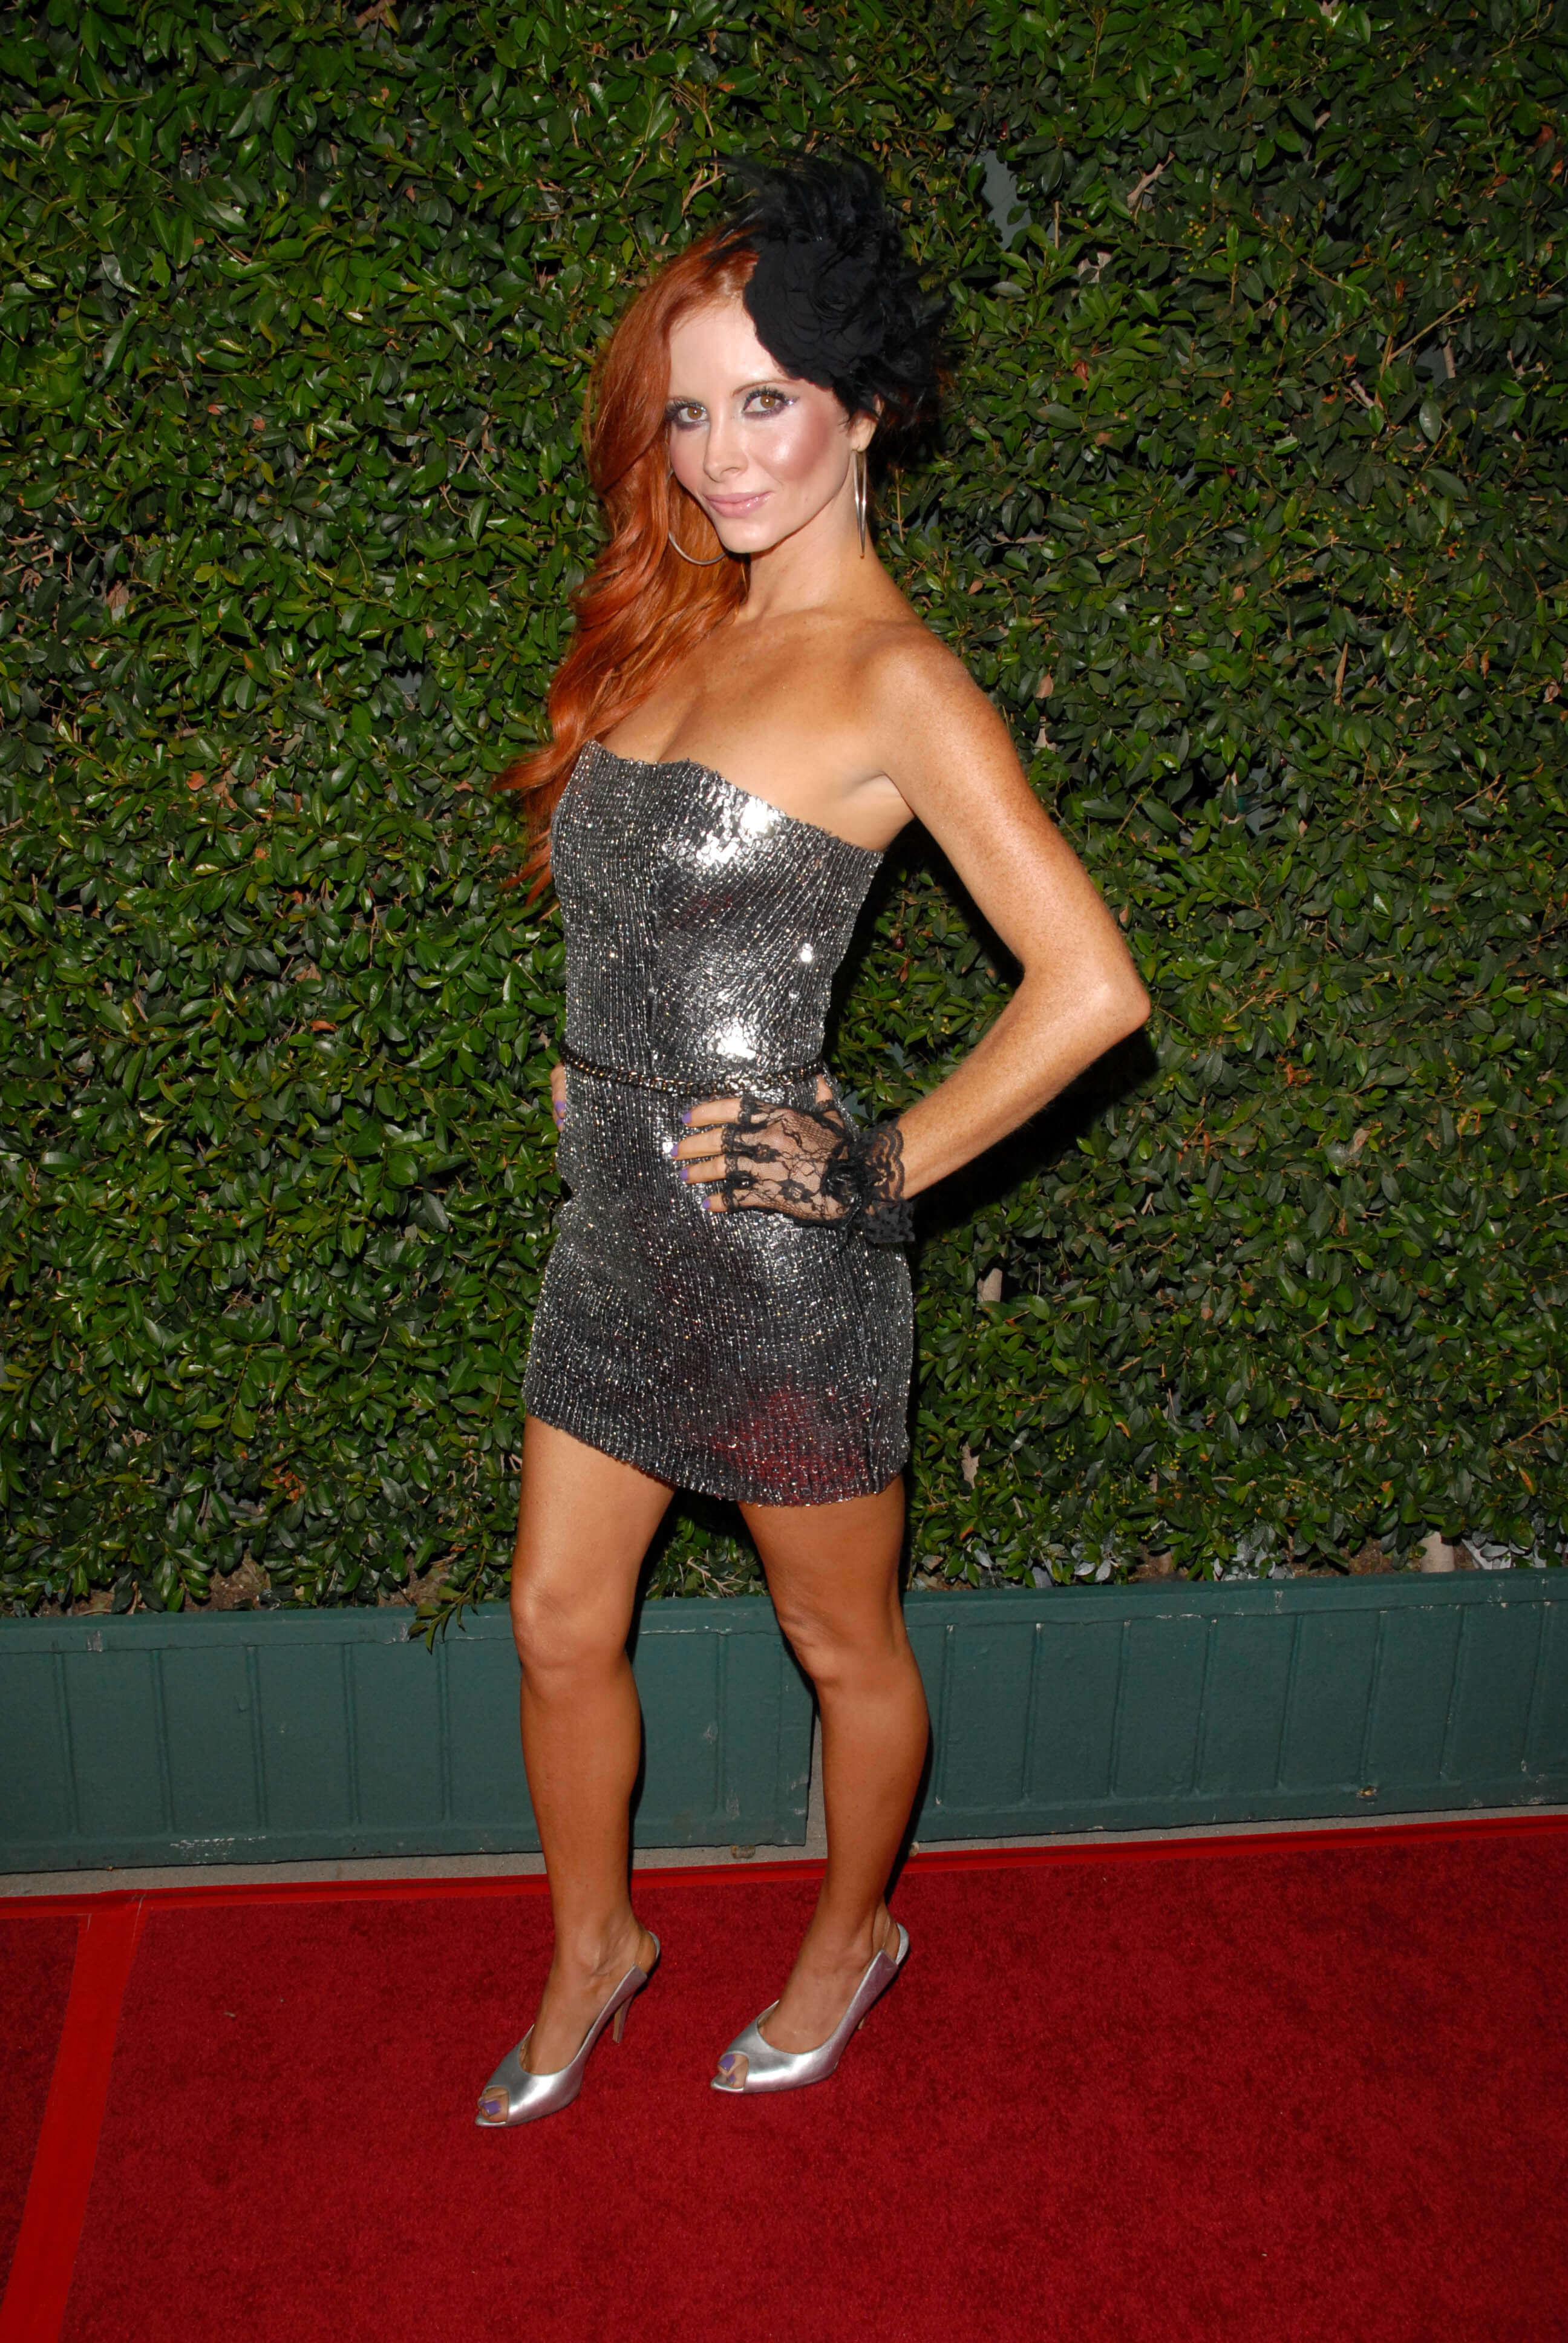 Phoebe Price sexy side pictures